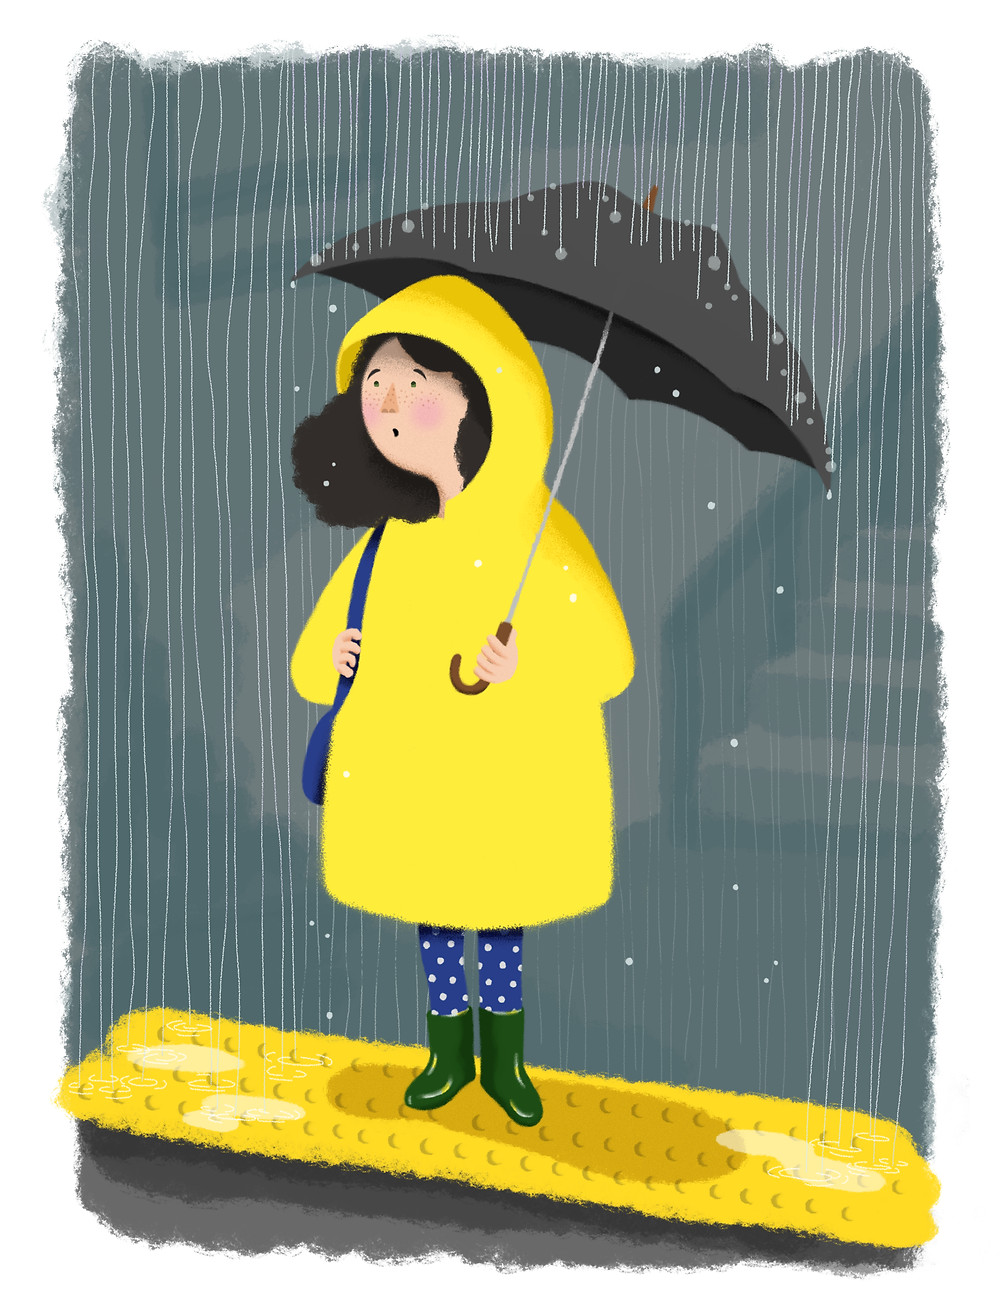 Girl wearing yellow raincoat, blue and white polka-dotted tights, green galoshes, and holding grey umbrella standing on a subway platform while rain pours down on and around her.